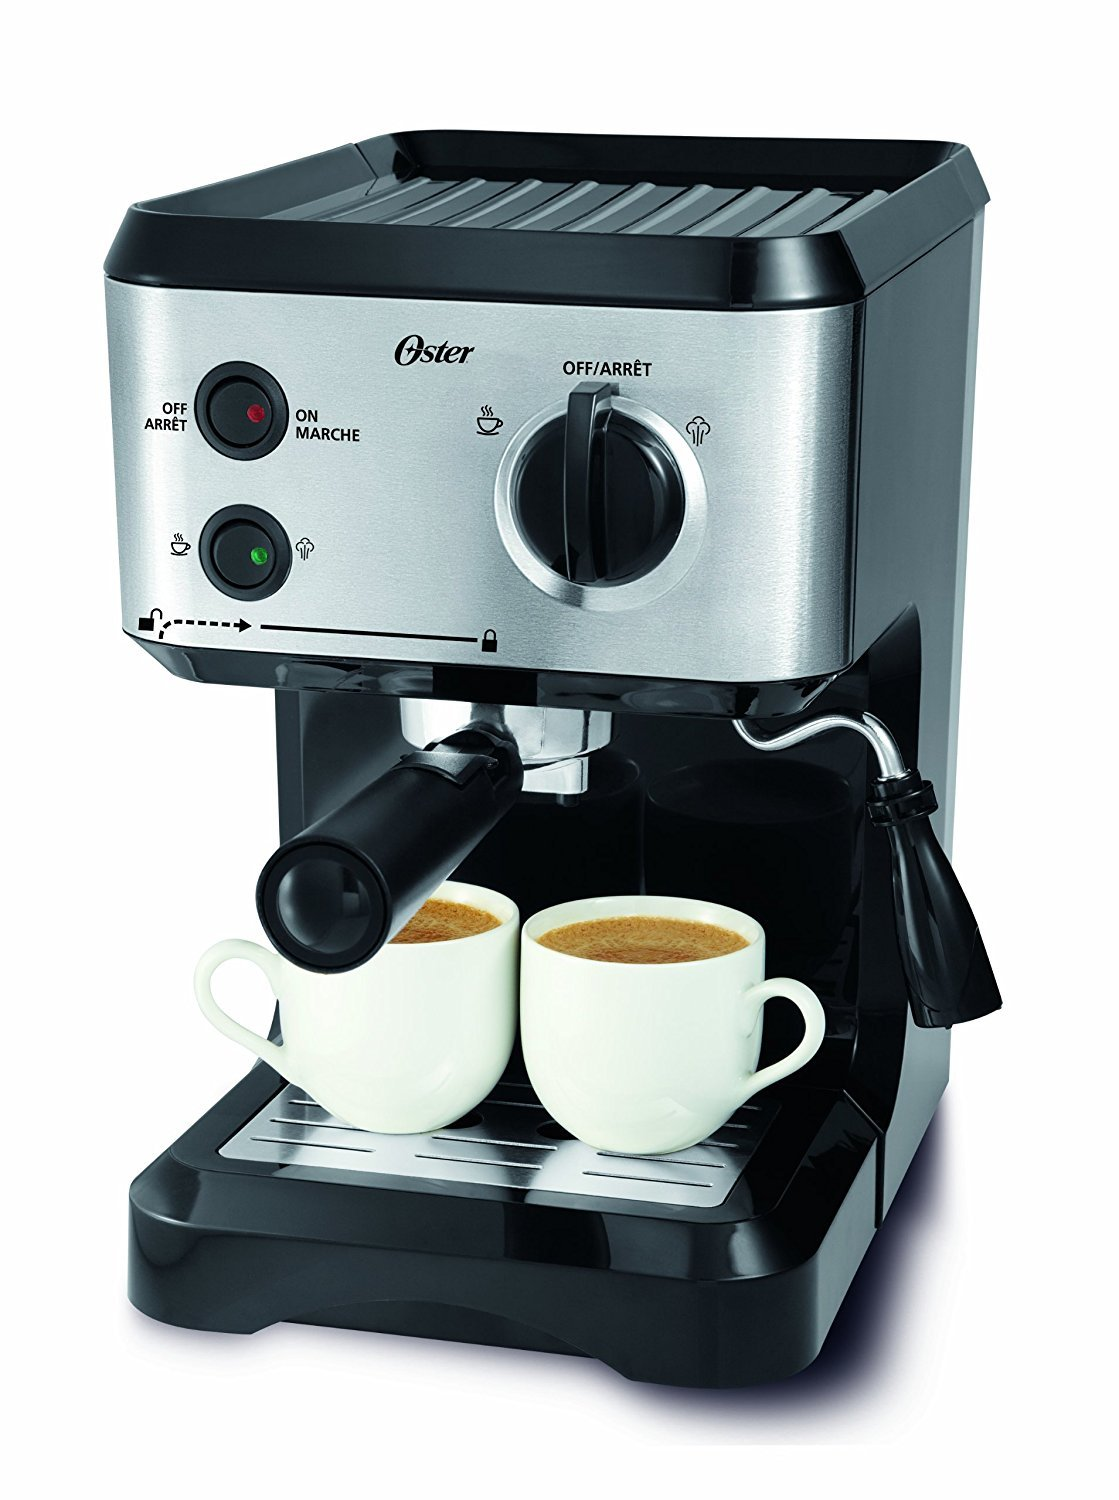 Oster BVSTECMP55 Cappuccino Maker, Medium, Black by Oster